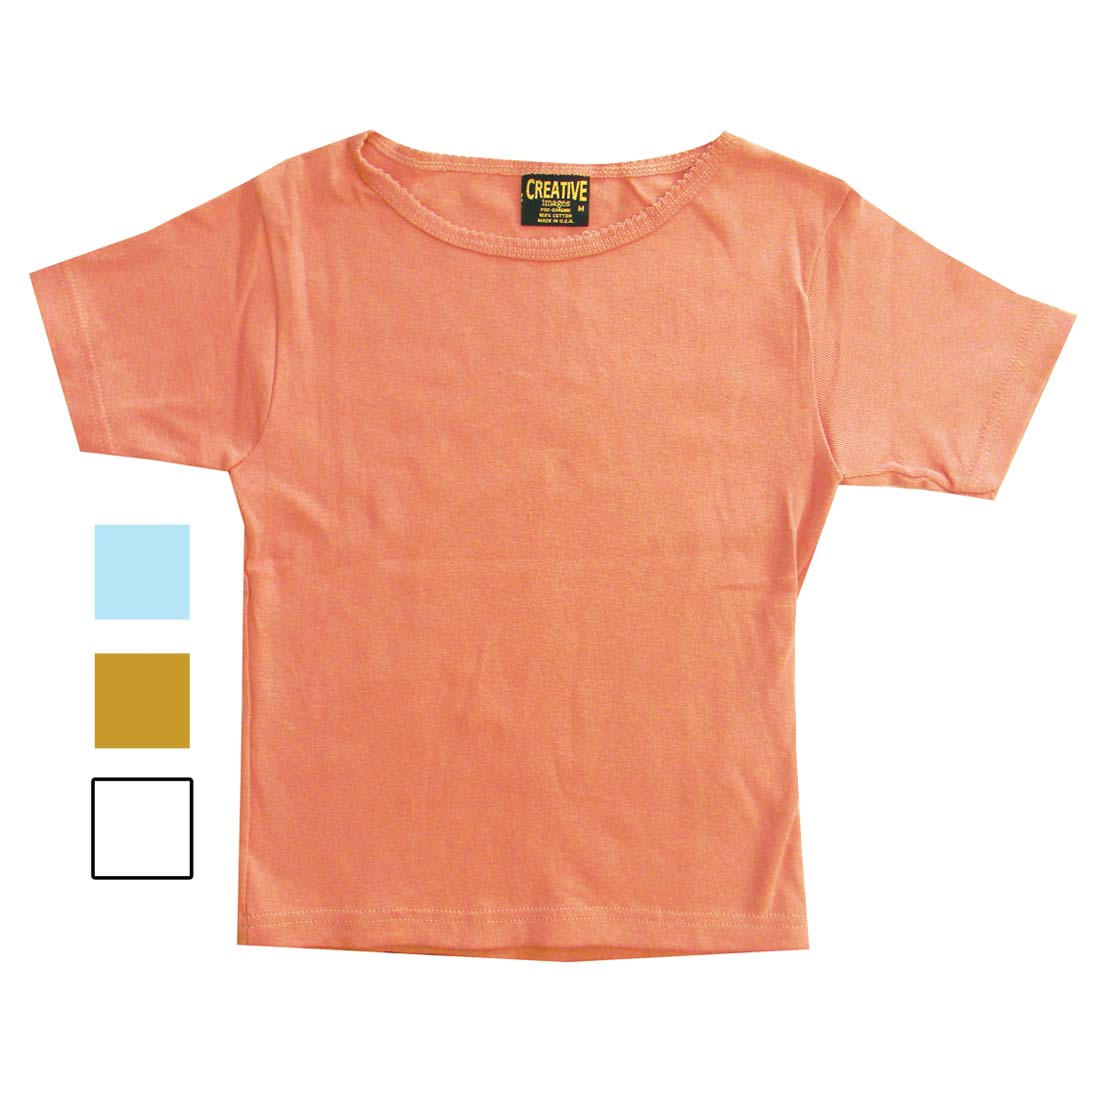 View GIRLS T-SHIRTS ASSORTED COLORS AND SIZES